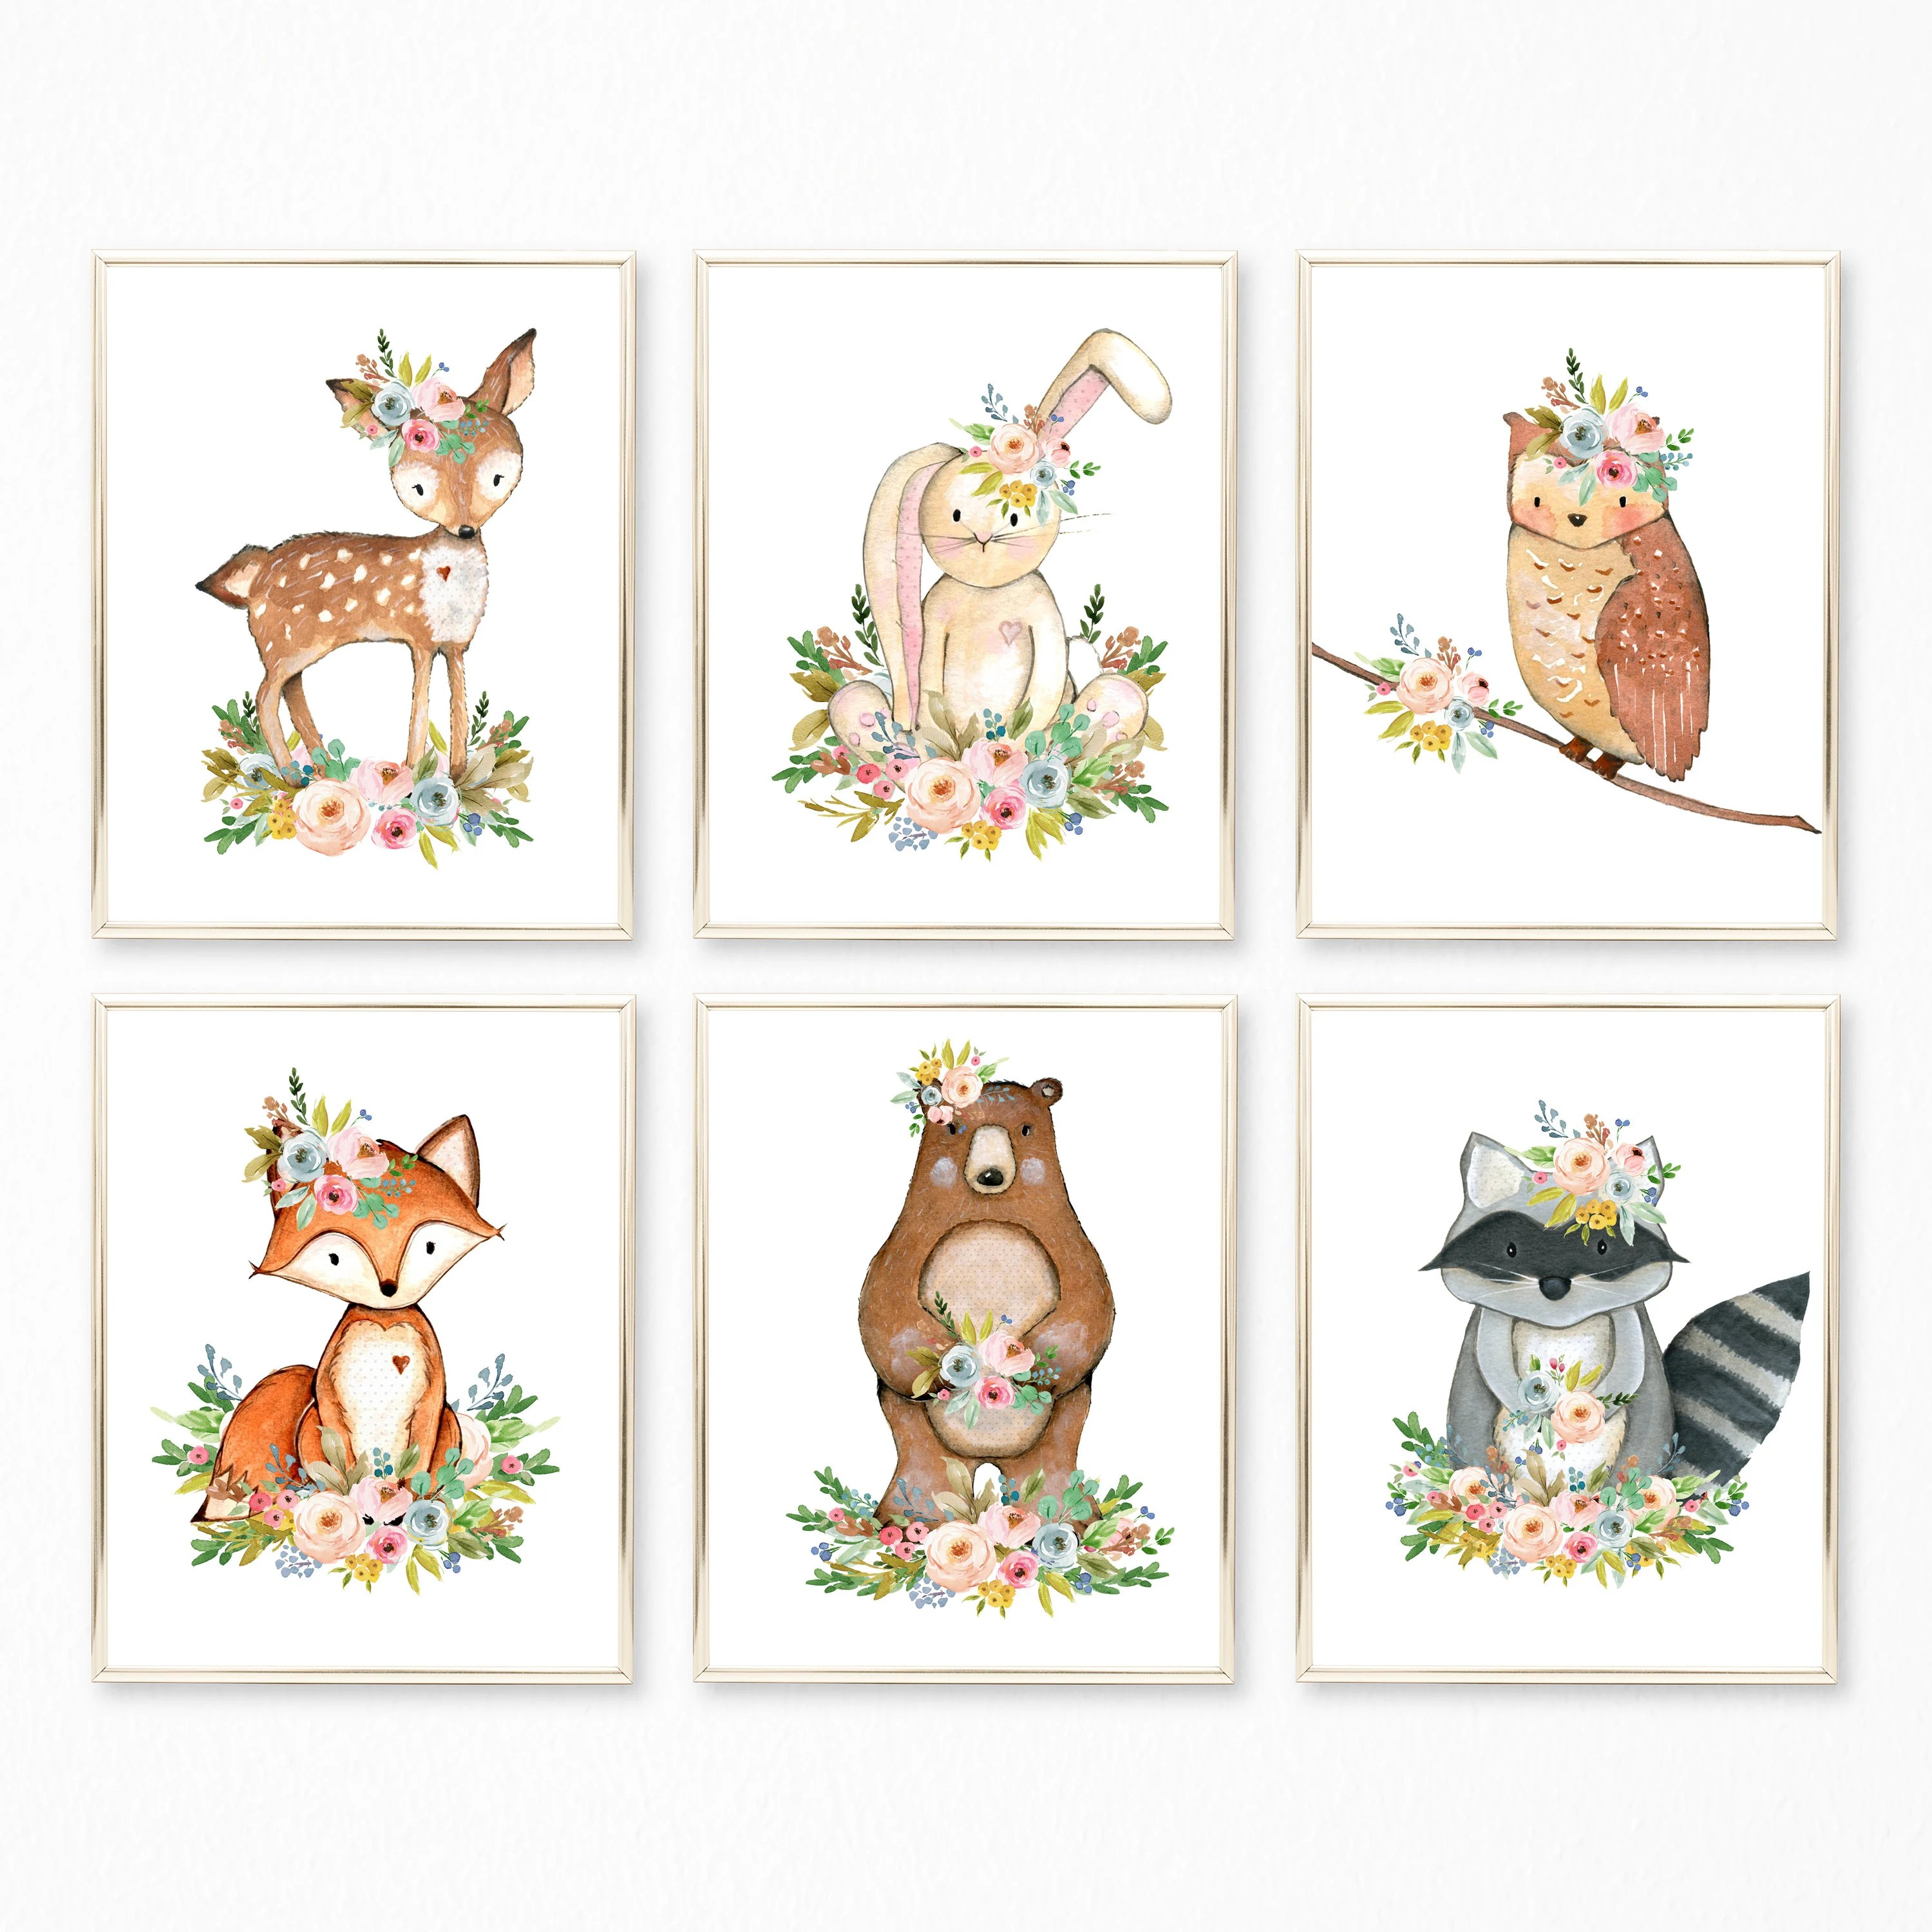 Woodland Nursery Art. Woodland Nursery Decor. Boho Woodland